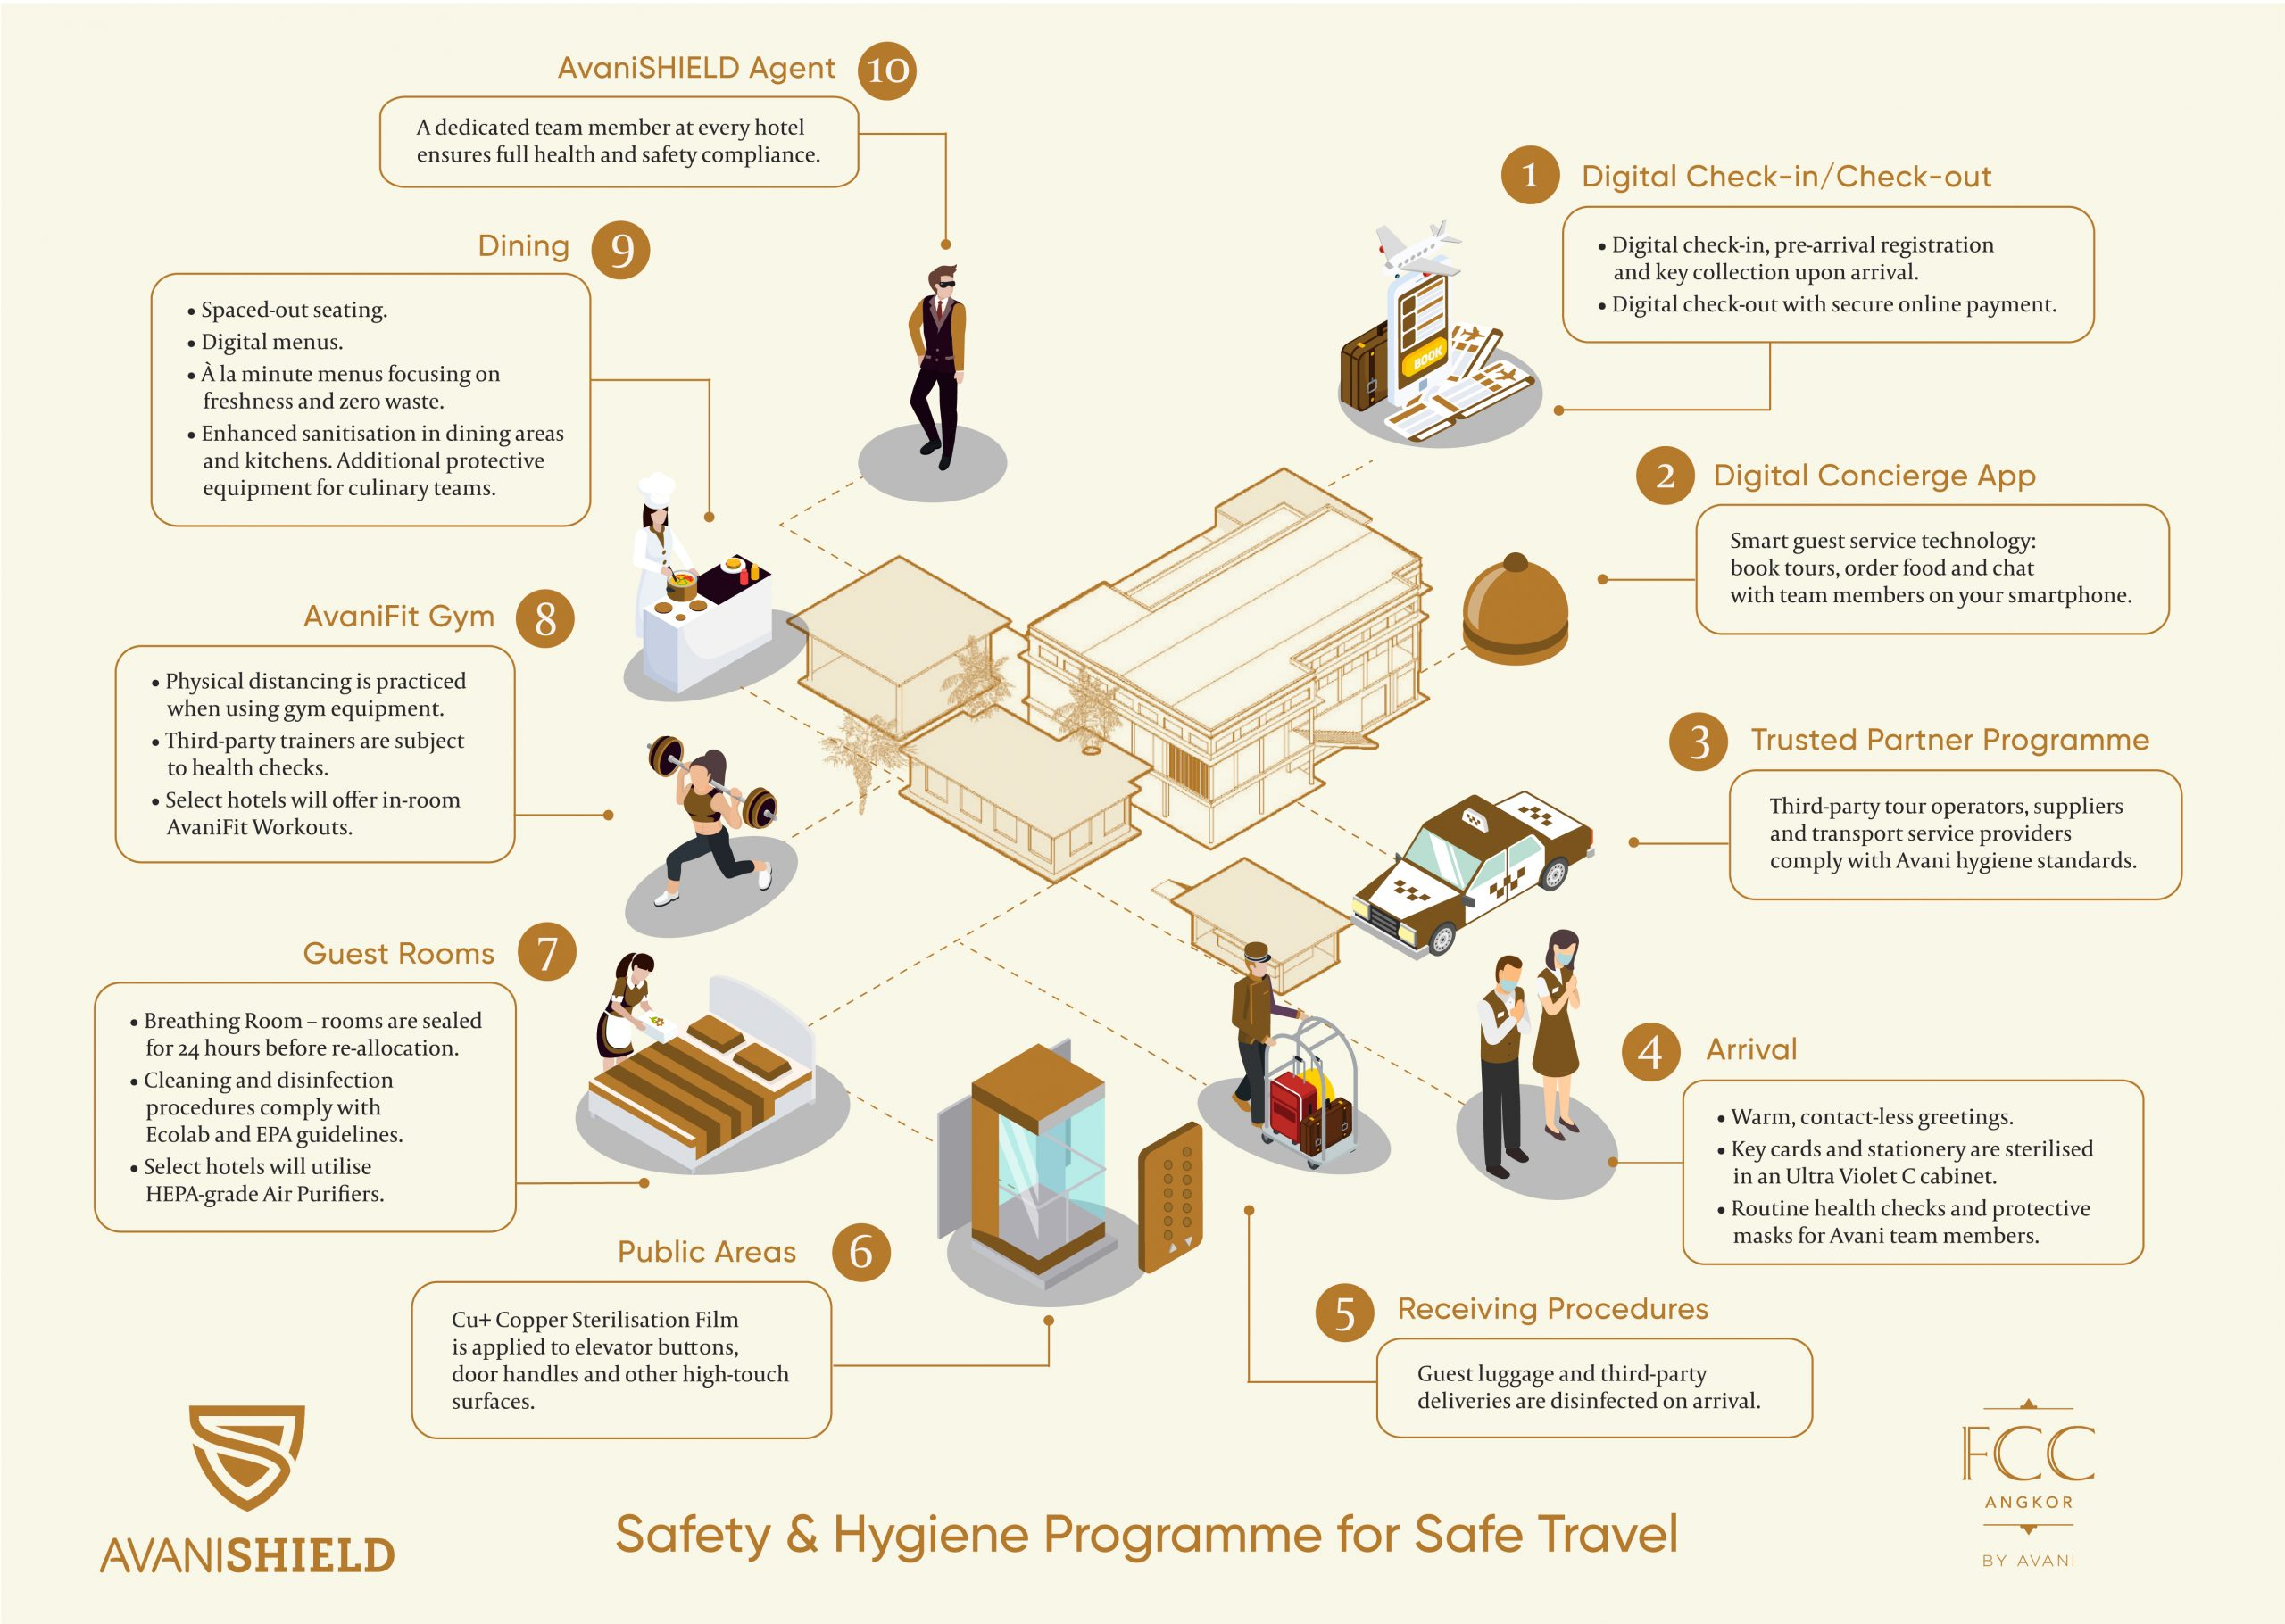 AvaniSHIELD Safety & Hygiene Programme for Safe Travel